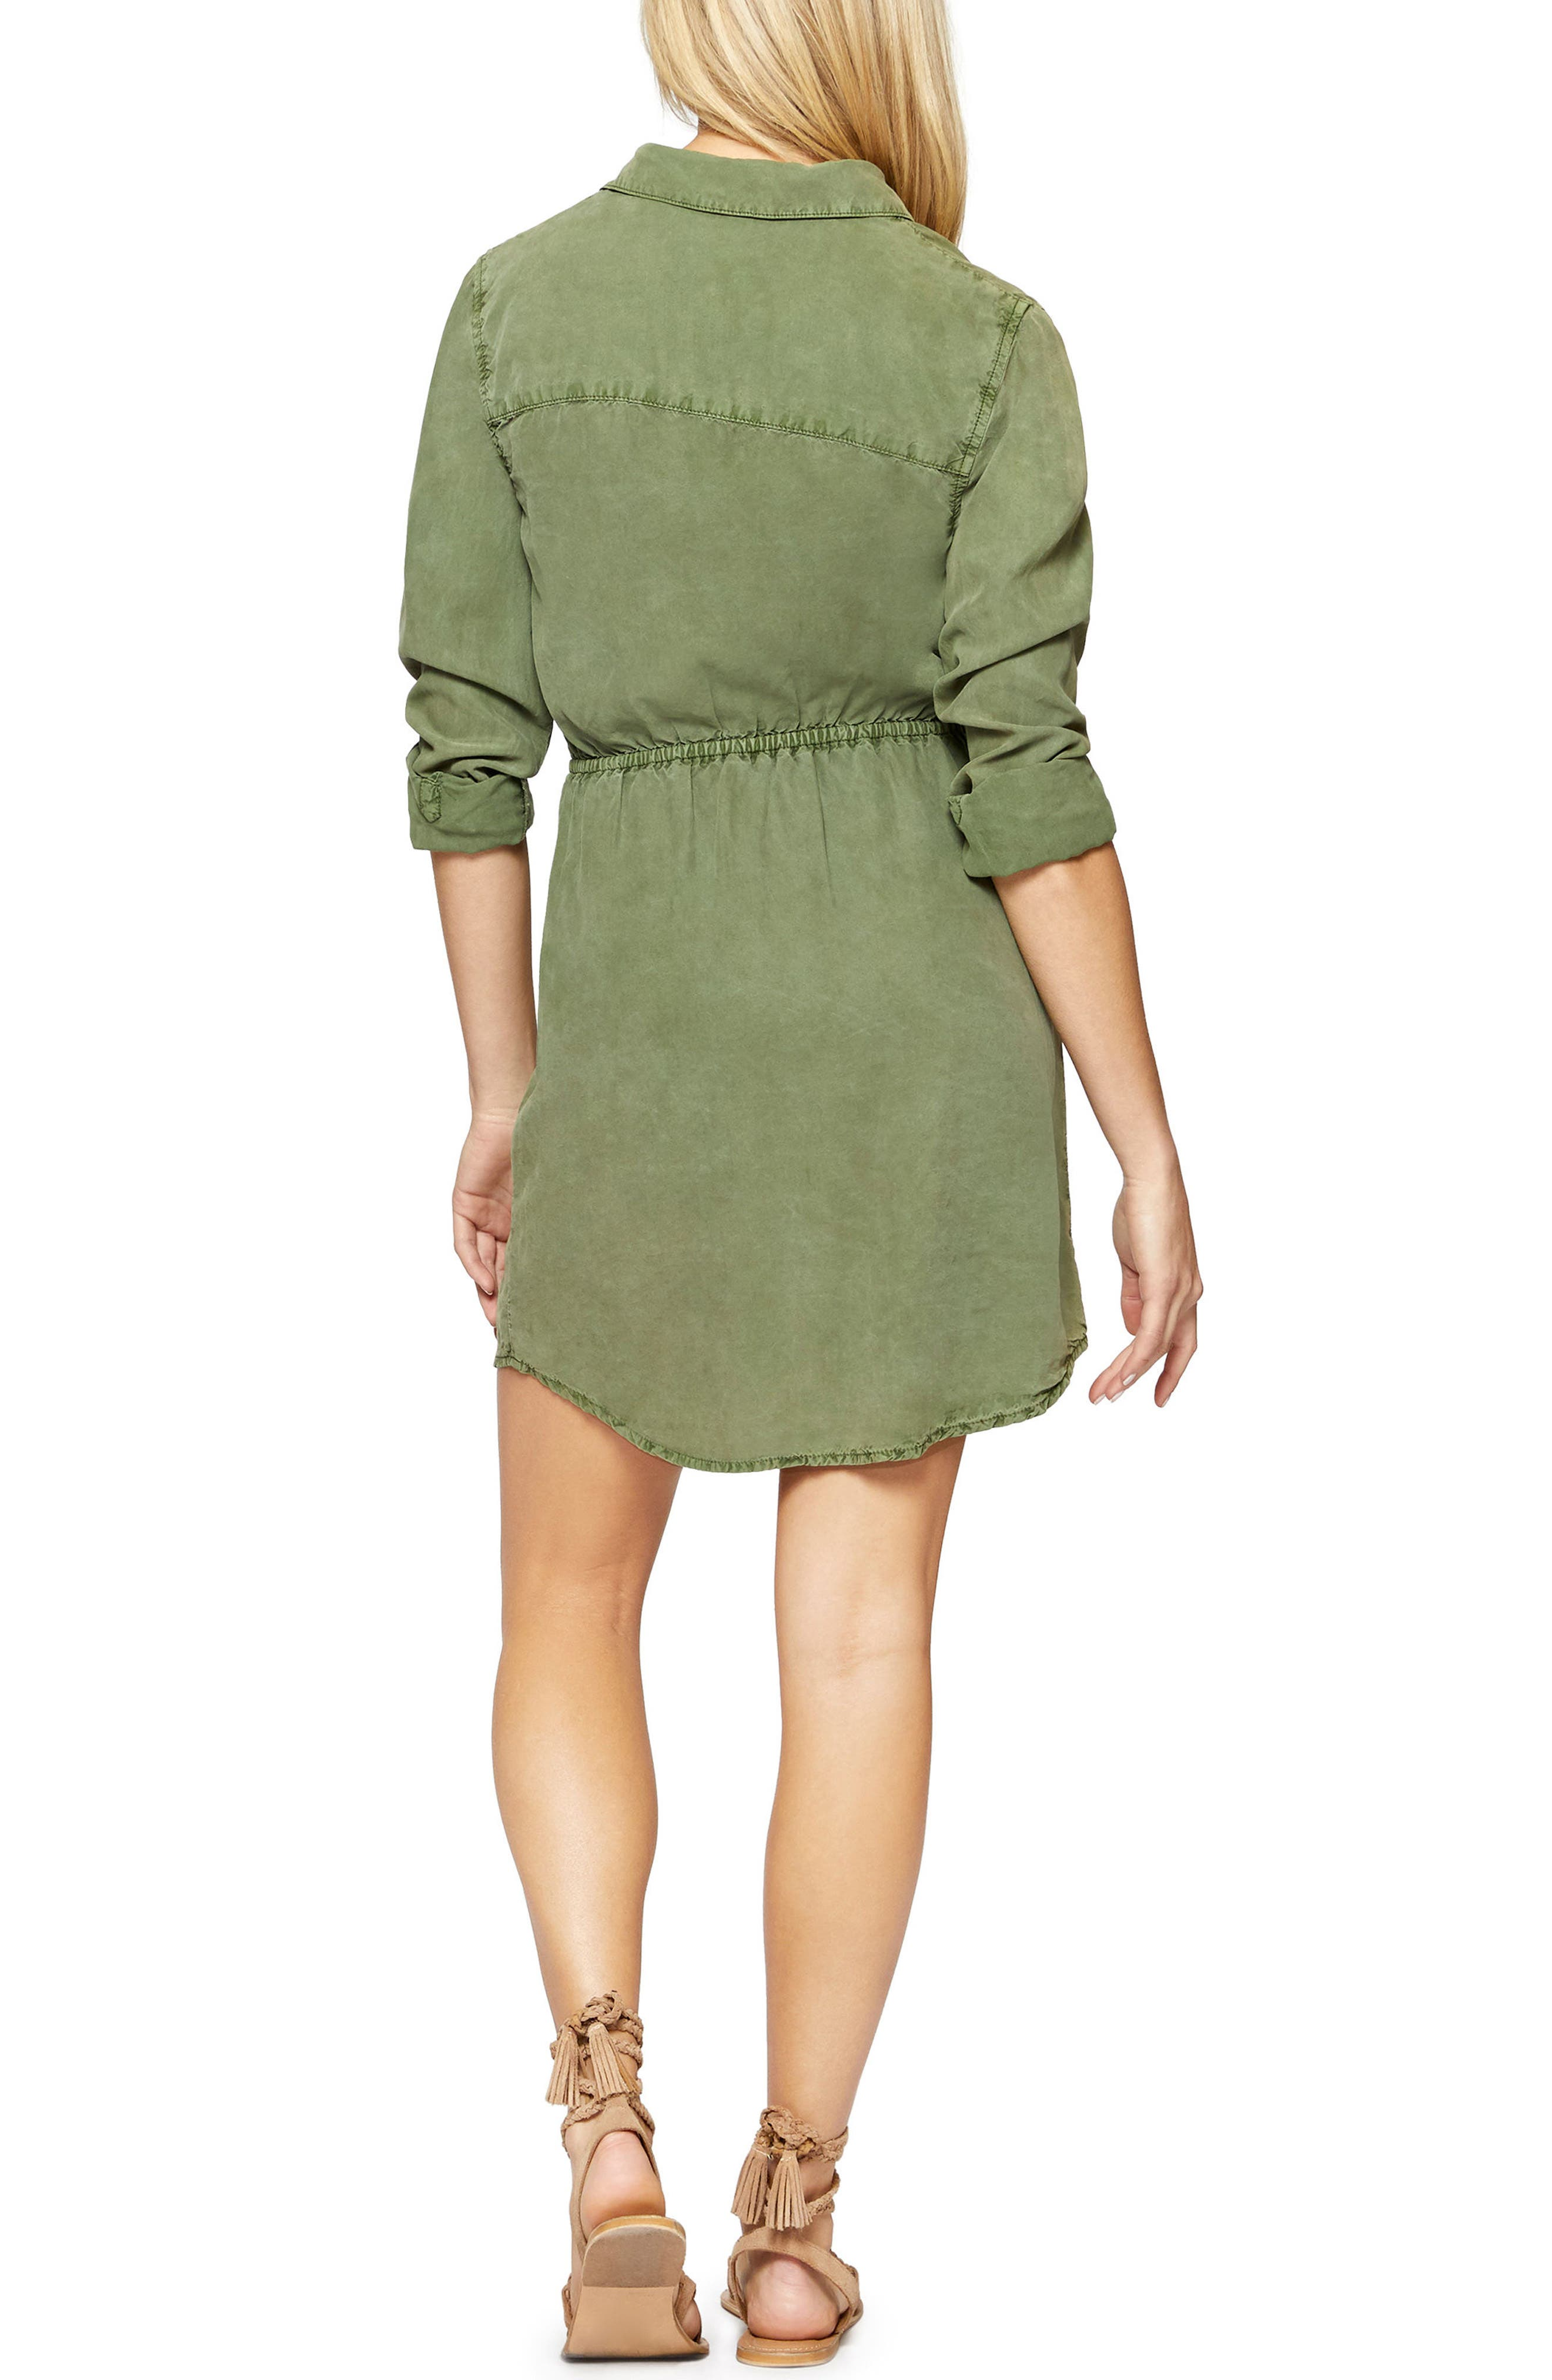 Forget Me Knot Shirtdress,                             Alternate thumbnail 2, color,                             Cadet